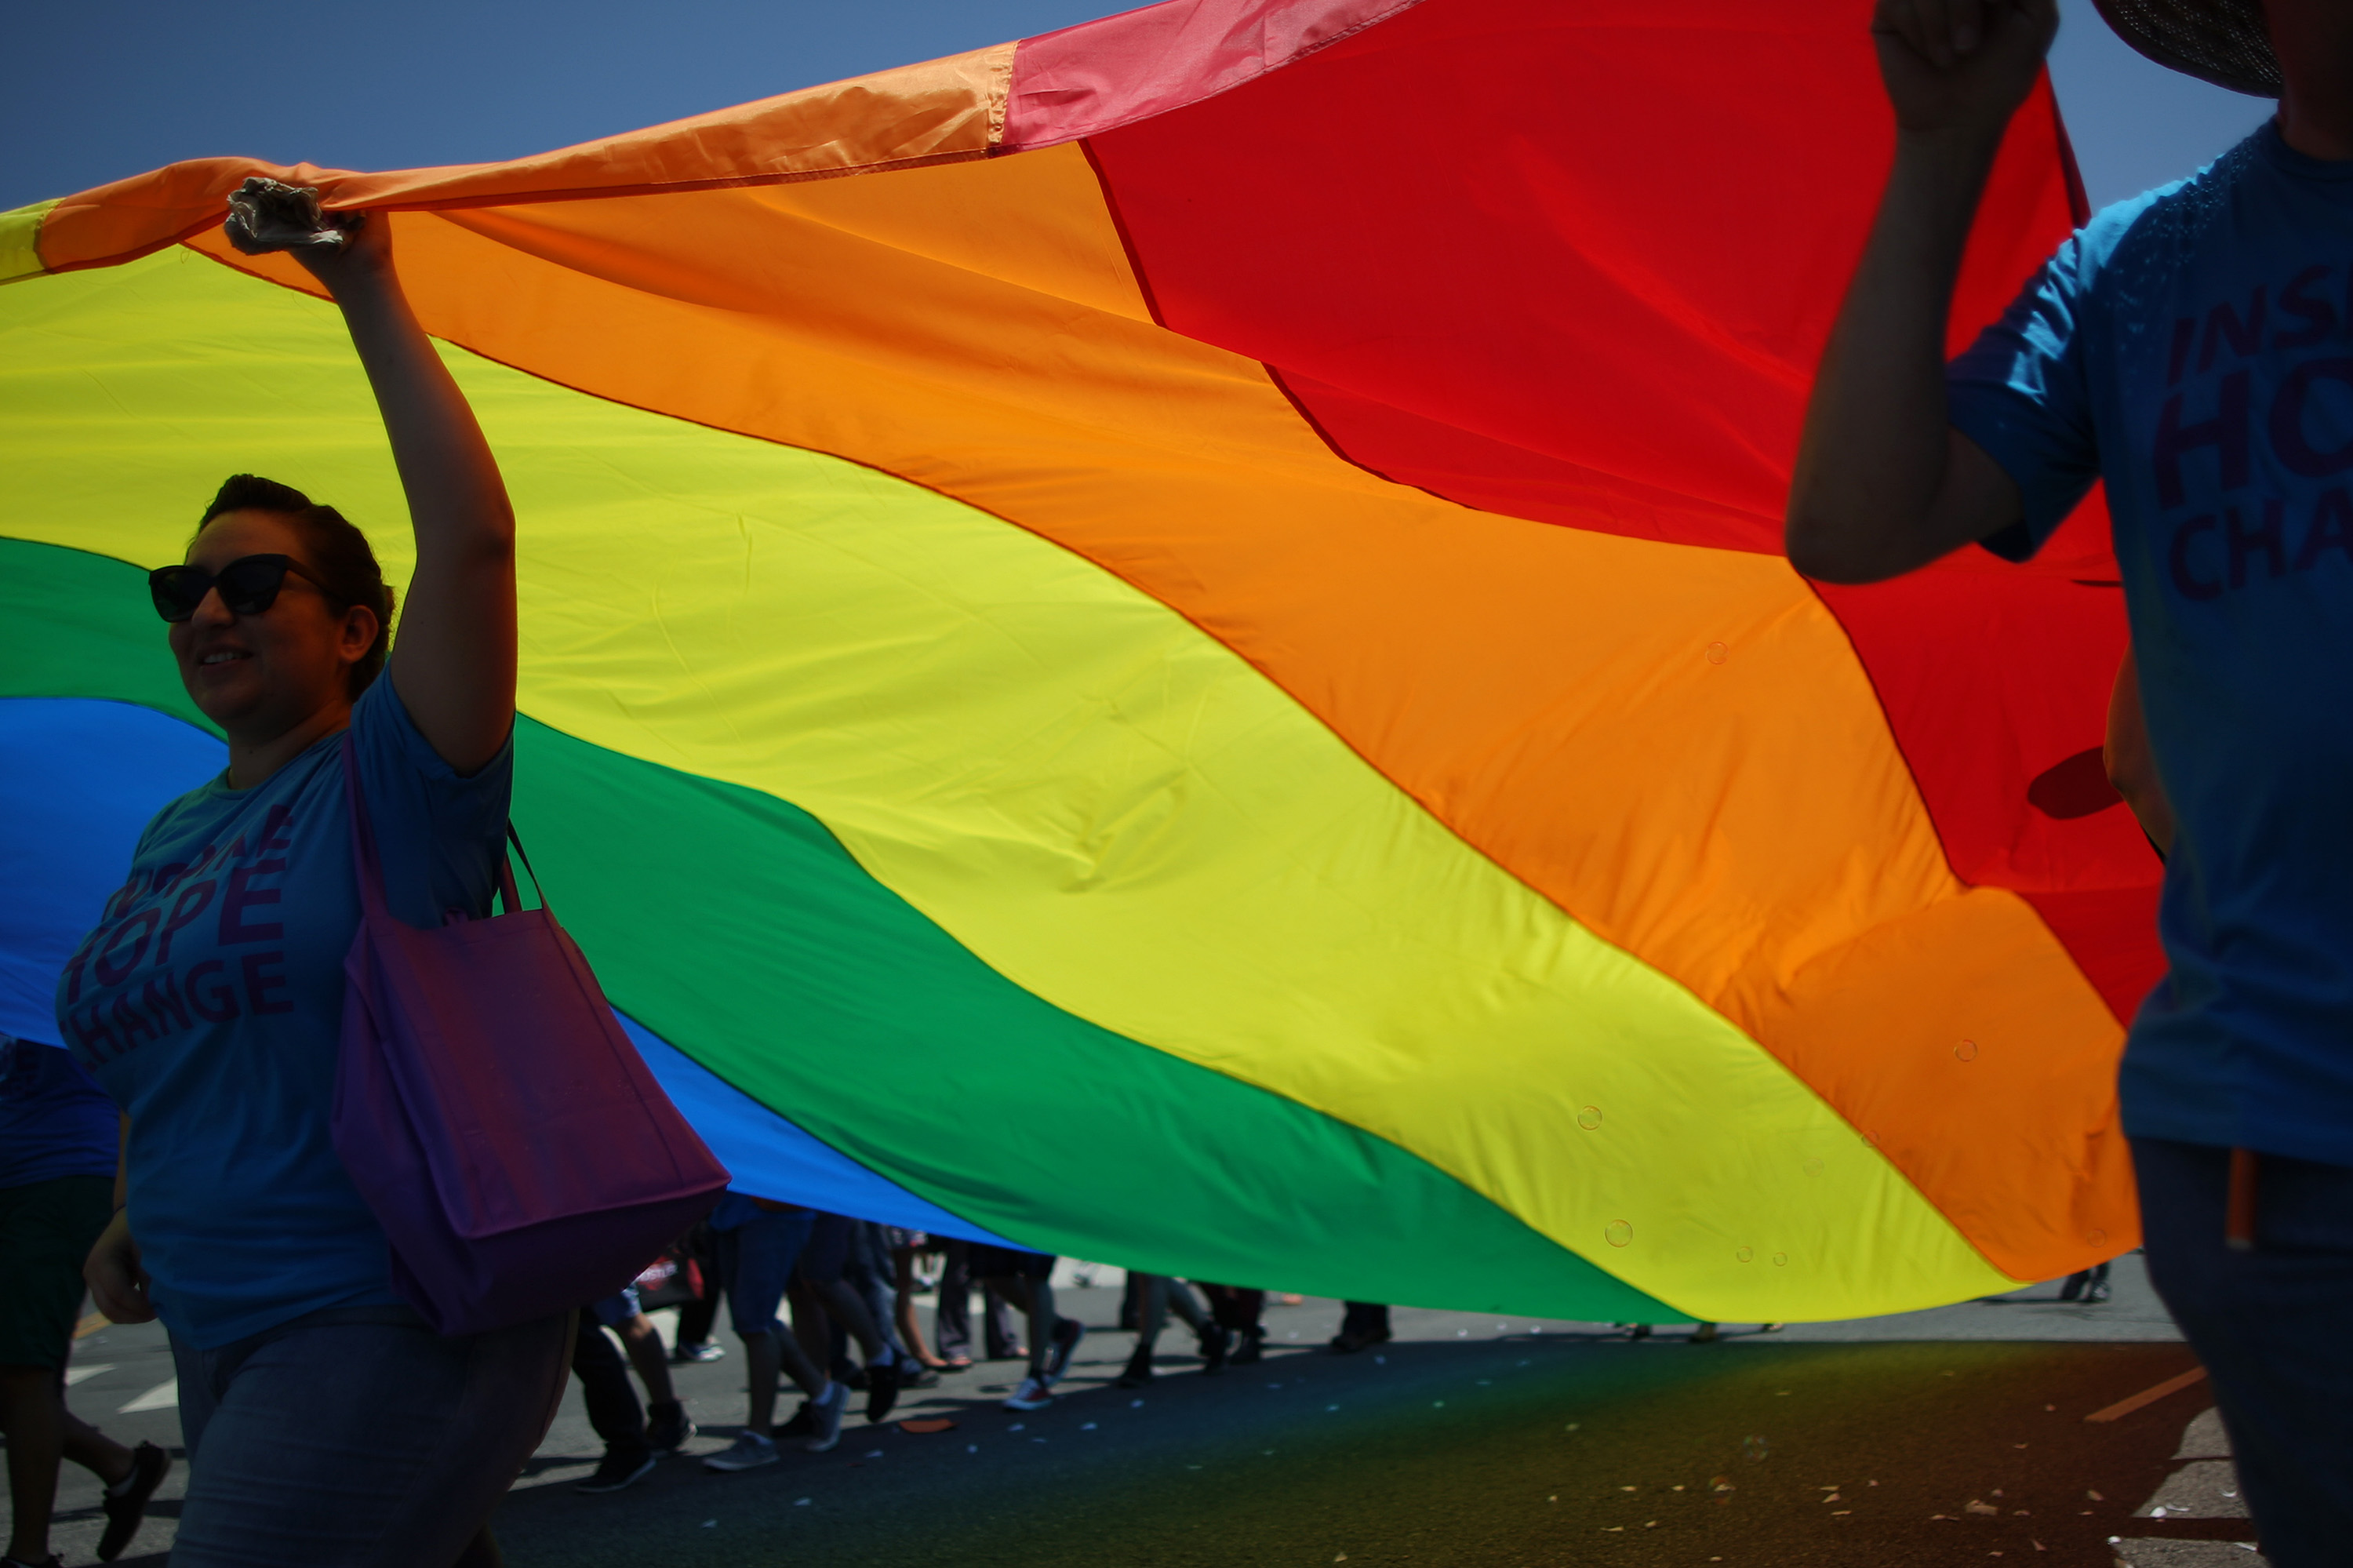 WEST HOLLYWOOD, CA - JUNE 8:  Marchers carry a rainbow flag in the LA Pride Parade on June 8, 2014 in West Hollywood, California. The LA Pride Parade and weekend events this year are emphasizing transgender rights and issues. The annual LGBT pride parade begin in 1970, a year after the Stonewall riots, and historically attracts more than 400,000 spectators and participants.   (Photo by David McNew/Getty Images)